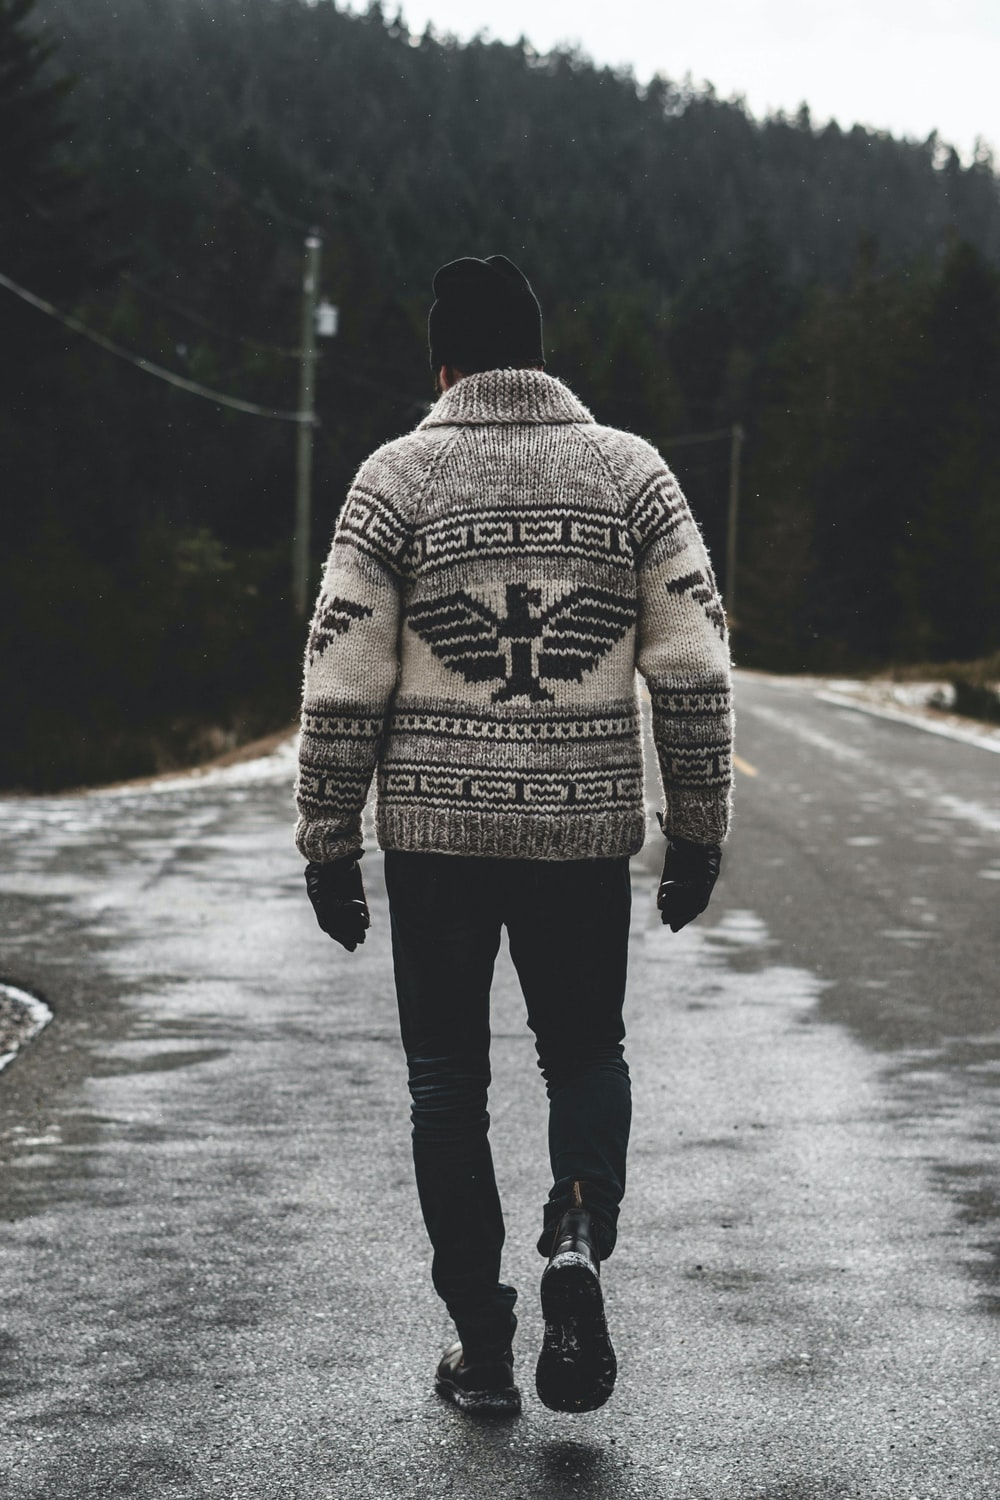 man in gray and black sweater standing on road during daytime